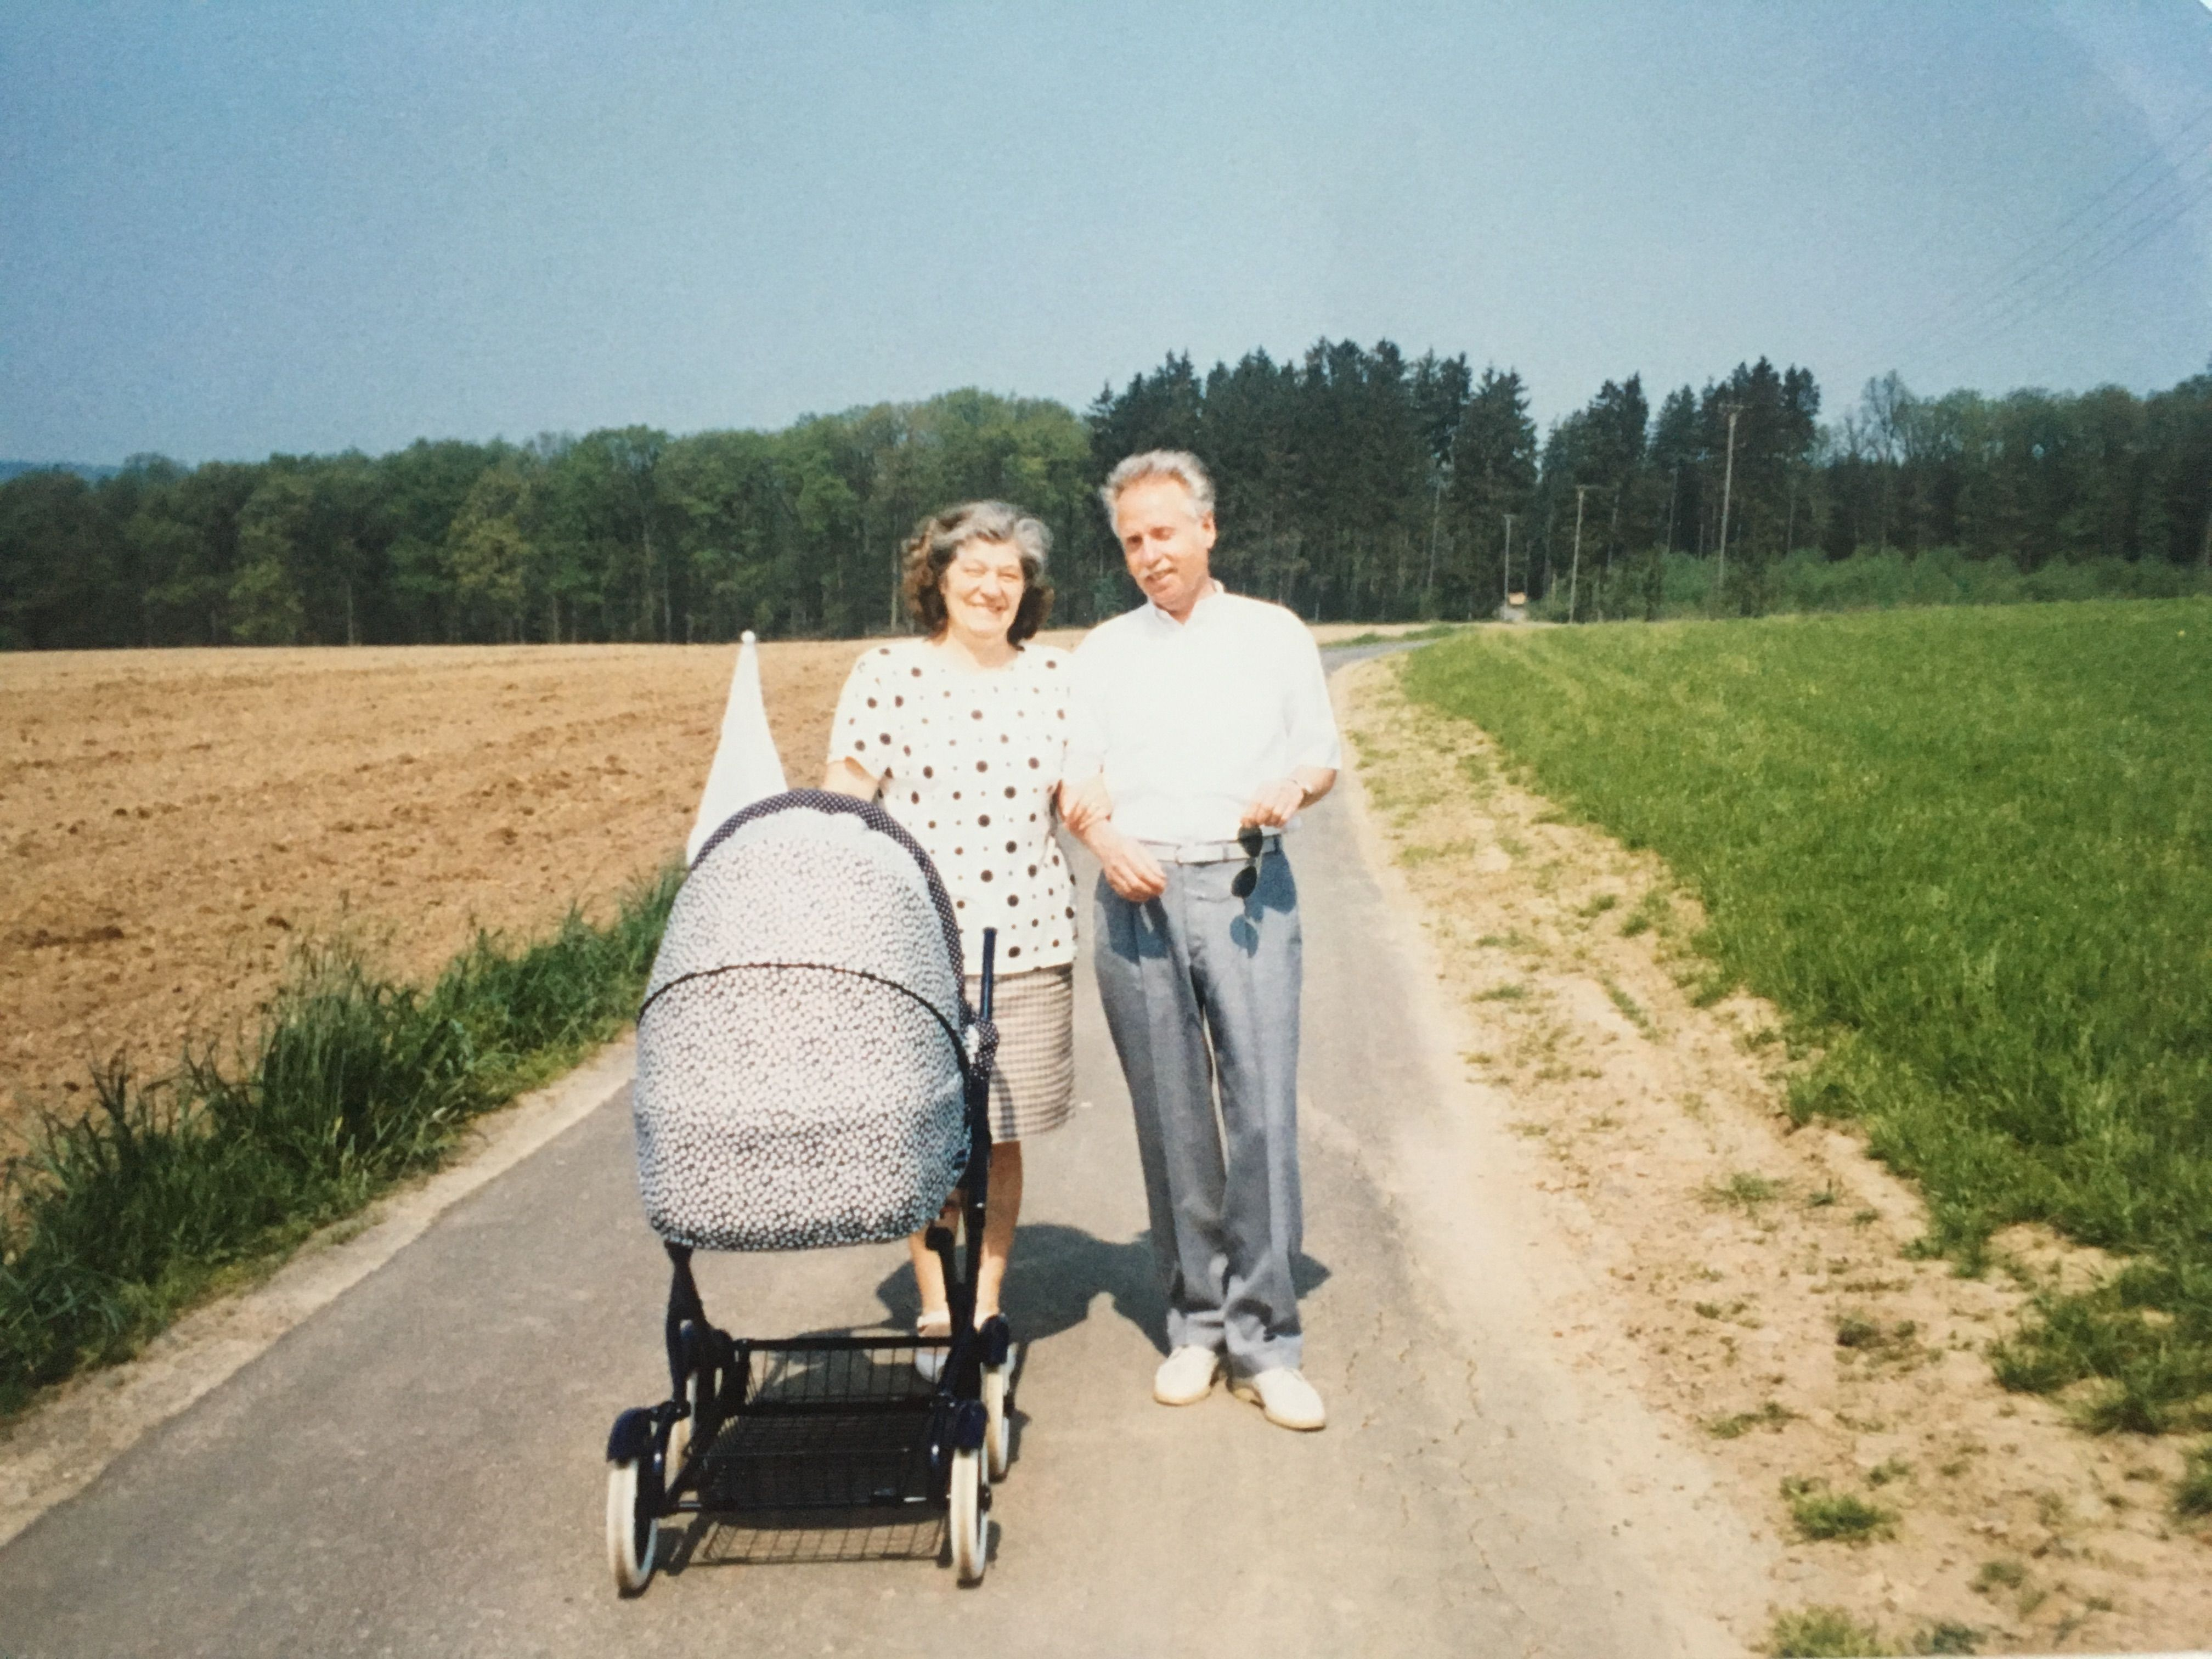 8 things my grandparents wish my generation would stop doing to the planet